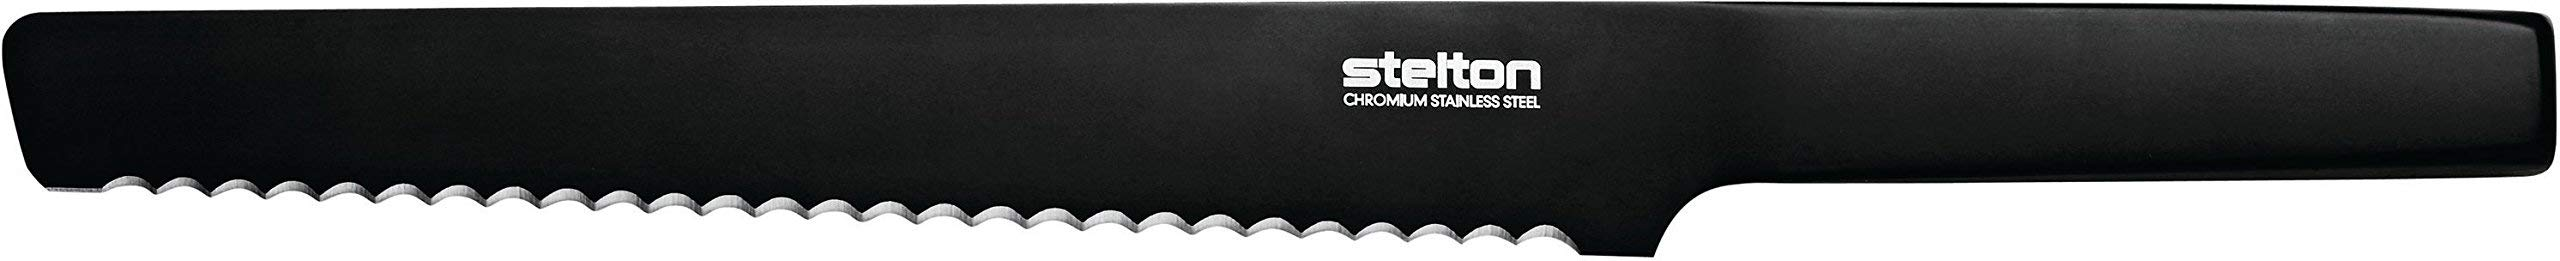 Stelton Pure Black Bread Knife